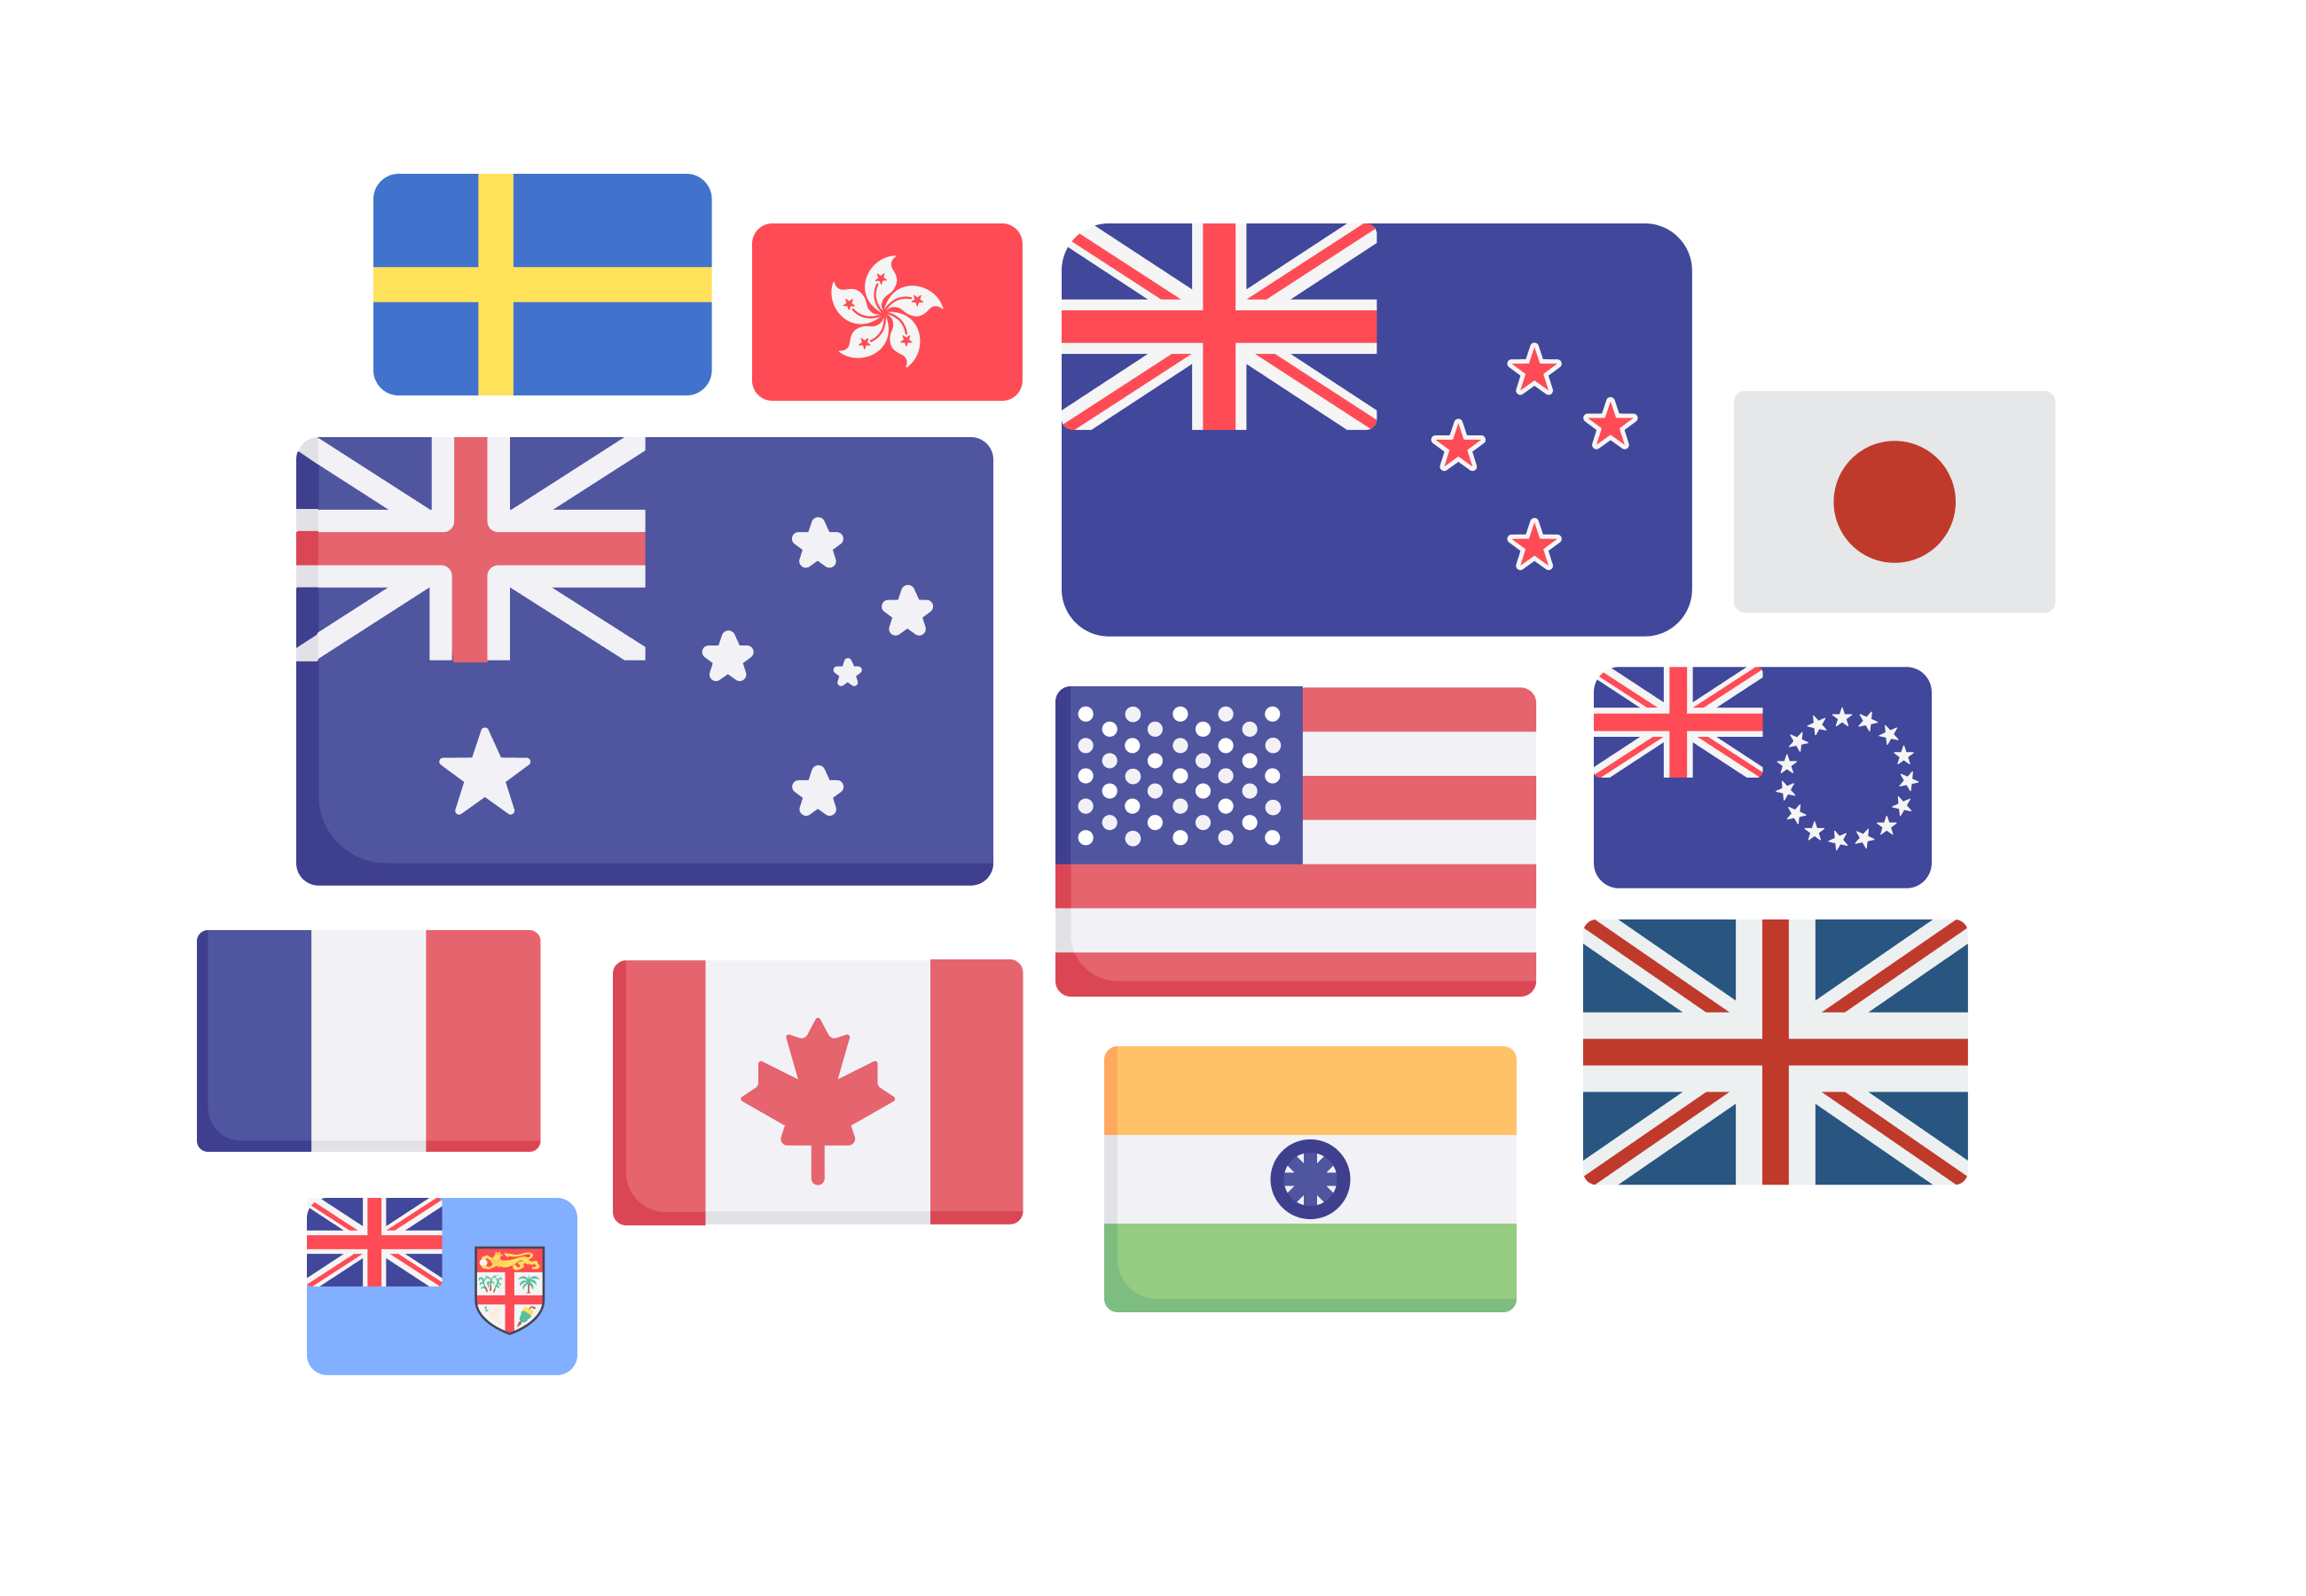 A collection of country flags in which Cradle phone can register numbers in